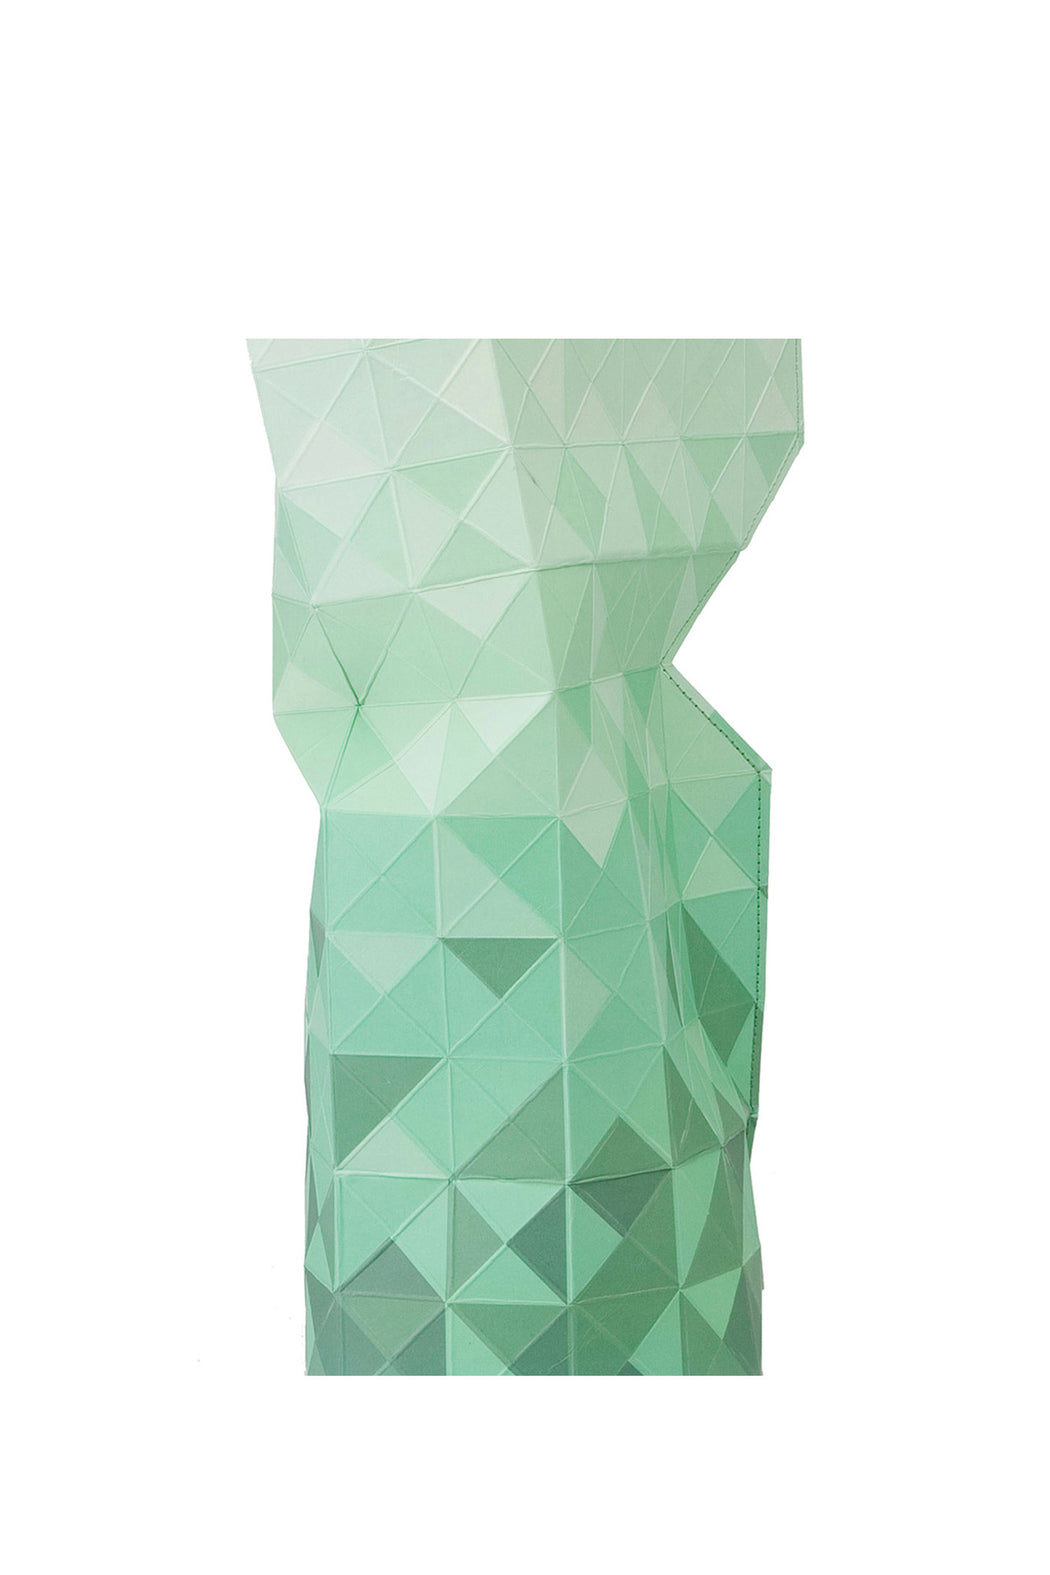 Large Green Gradients Vase Cover, Vase, Tiny Miracles - 3LittlePicks